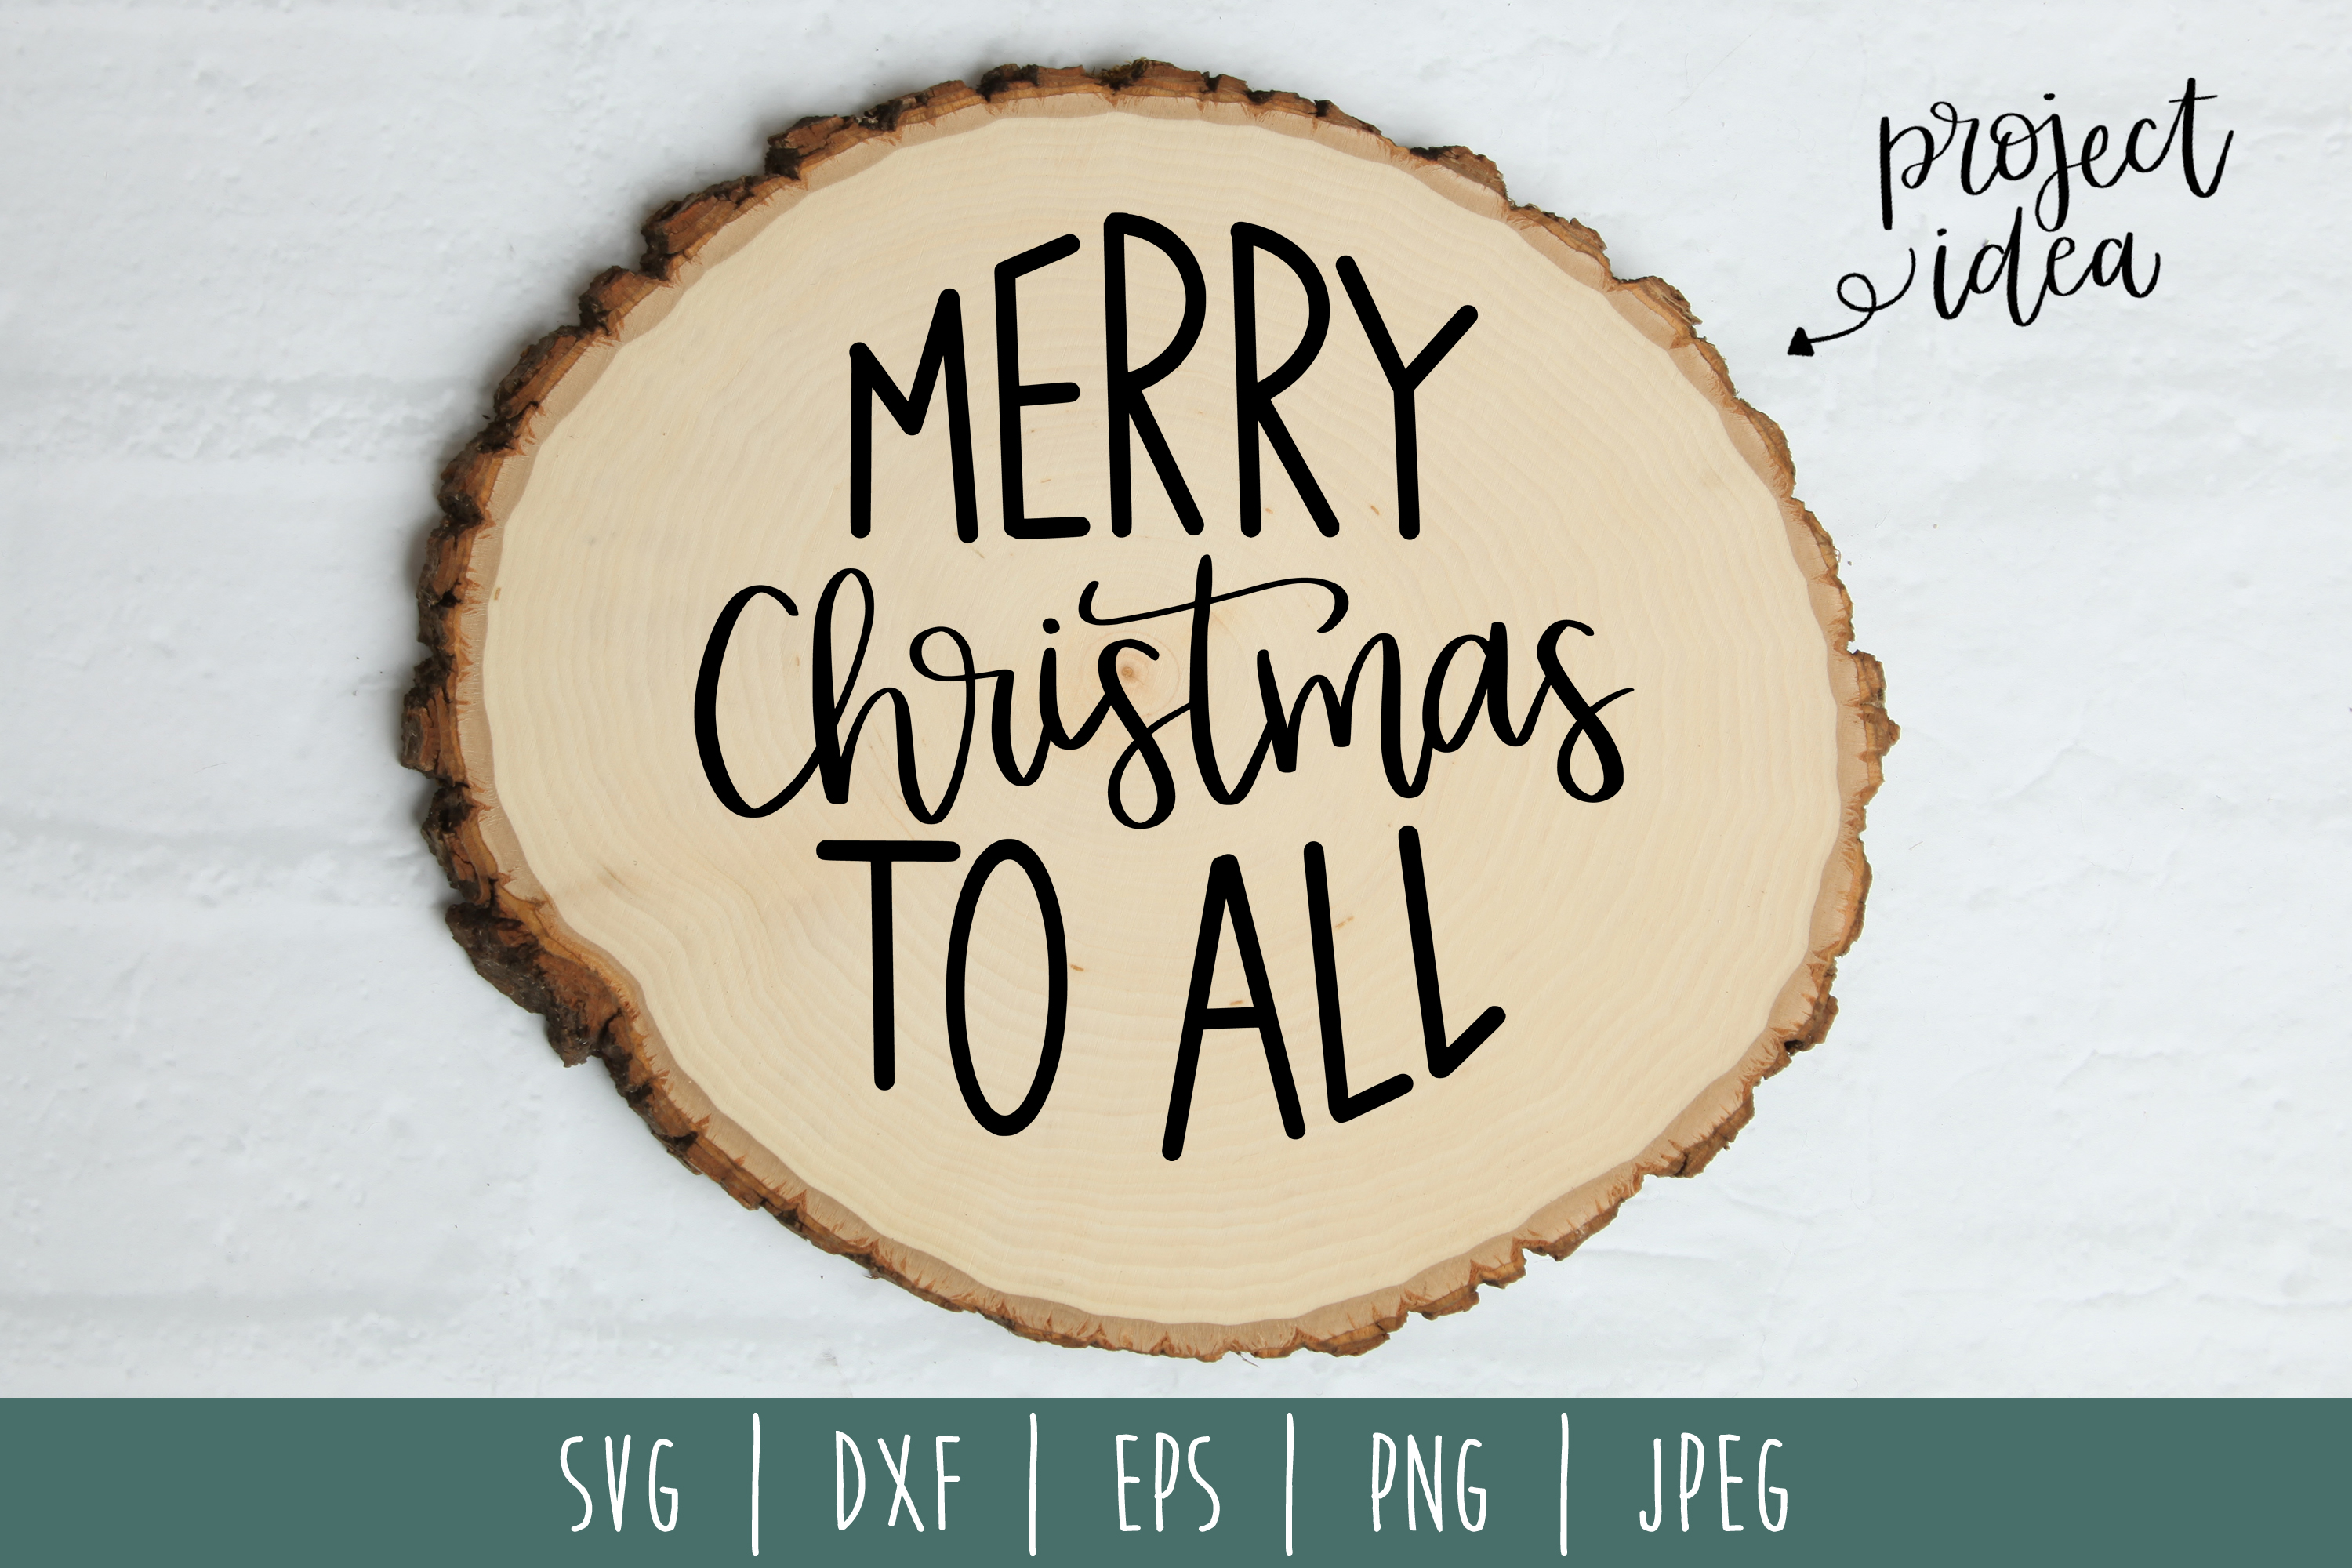 Merry Christmas To All SVG, DXF, EPS, PNG JPEG example image 2